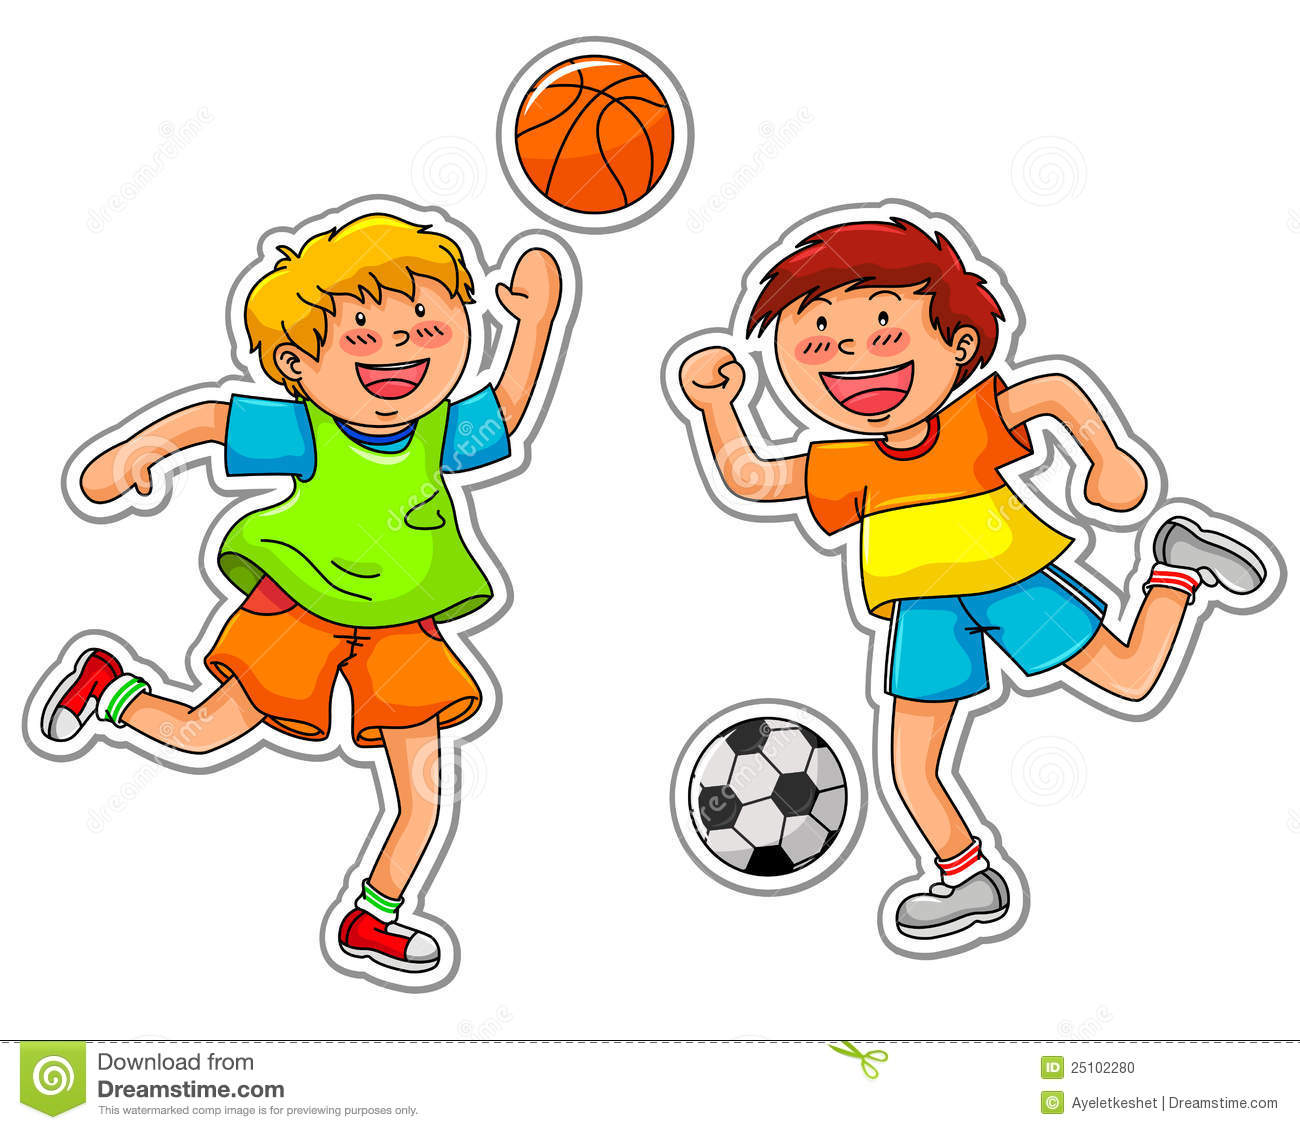 Brothers Football Outdoor Stock Illustrations 3 Brothers Football Outdoor Stock Illustrations Vectors Clipart Dreamstime